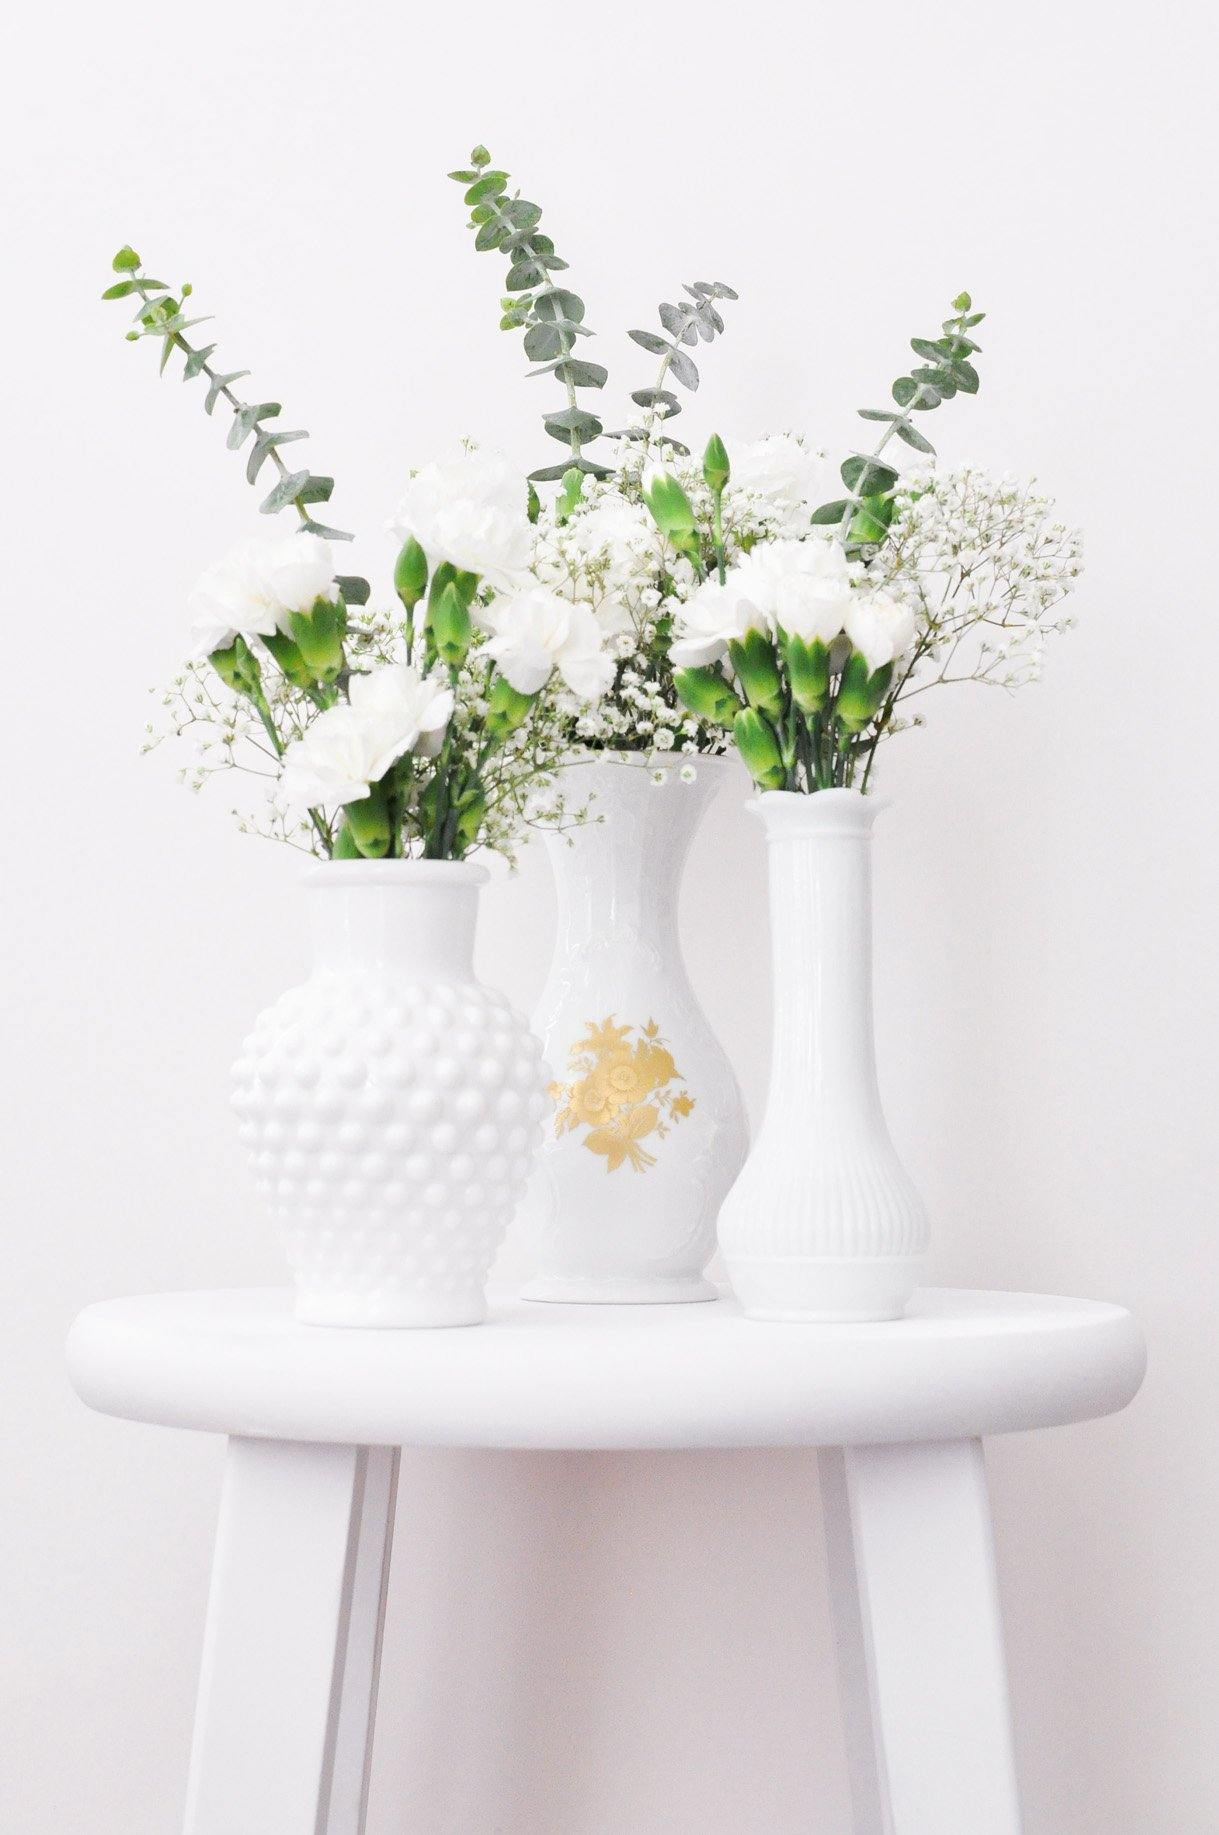 Scalloped Milk Glass Vase